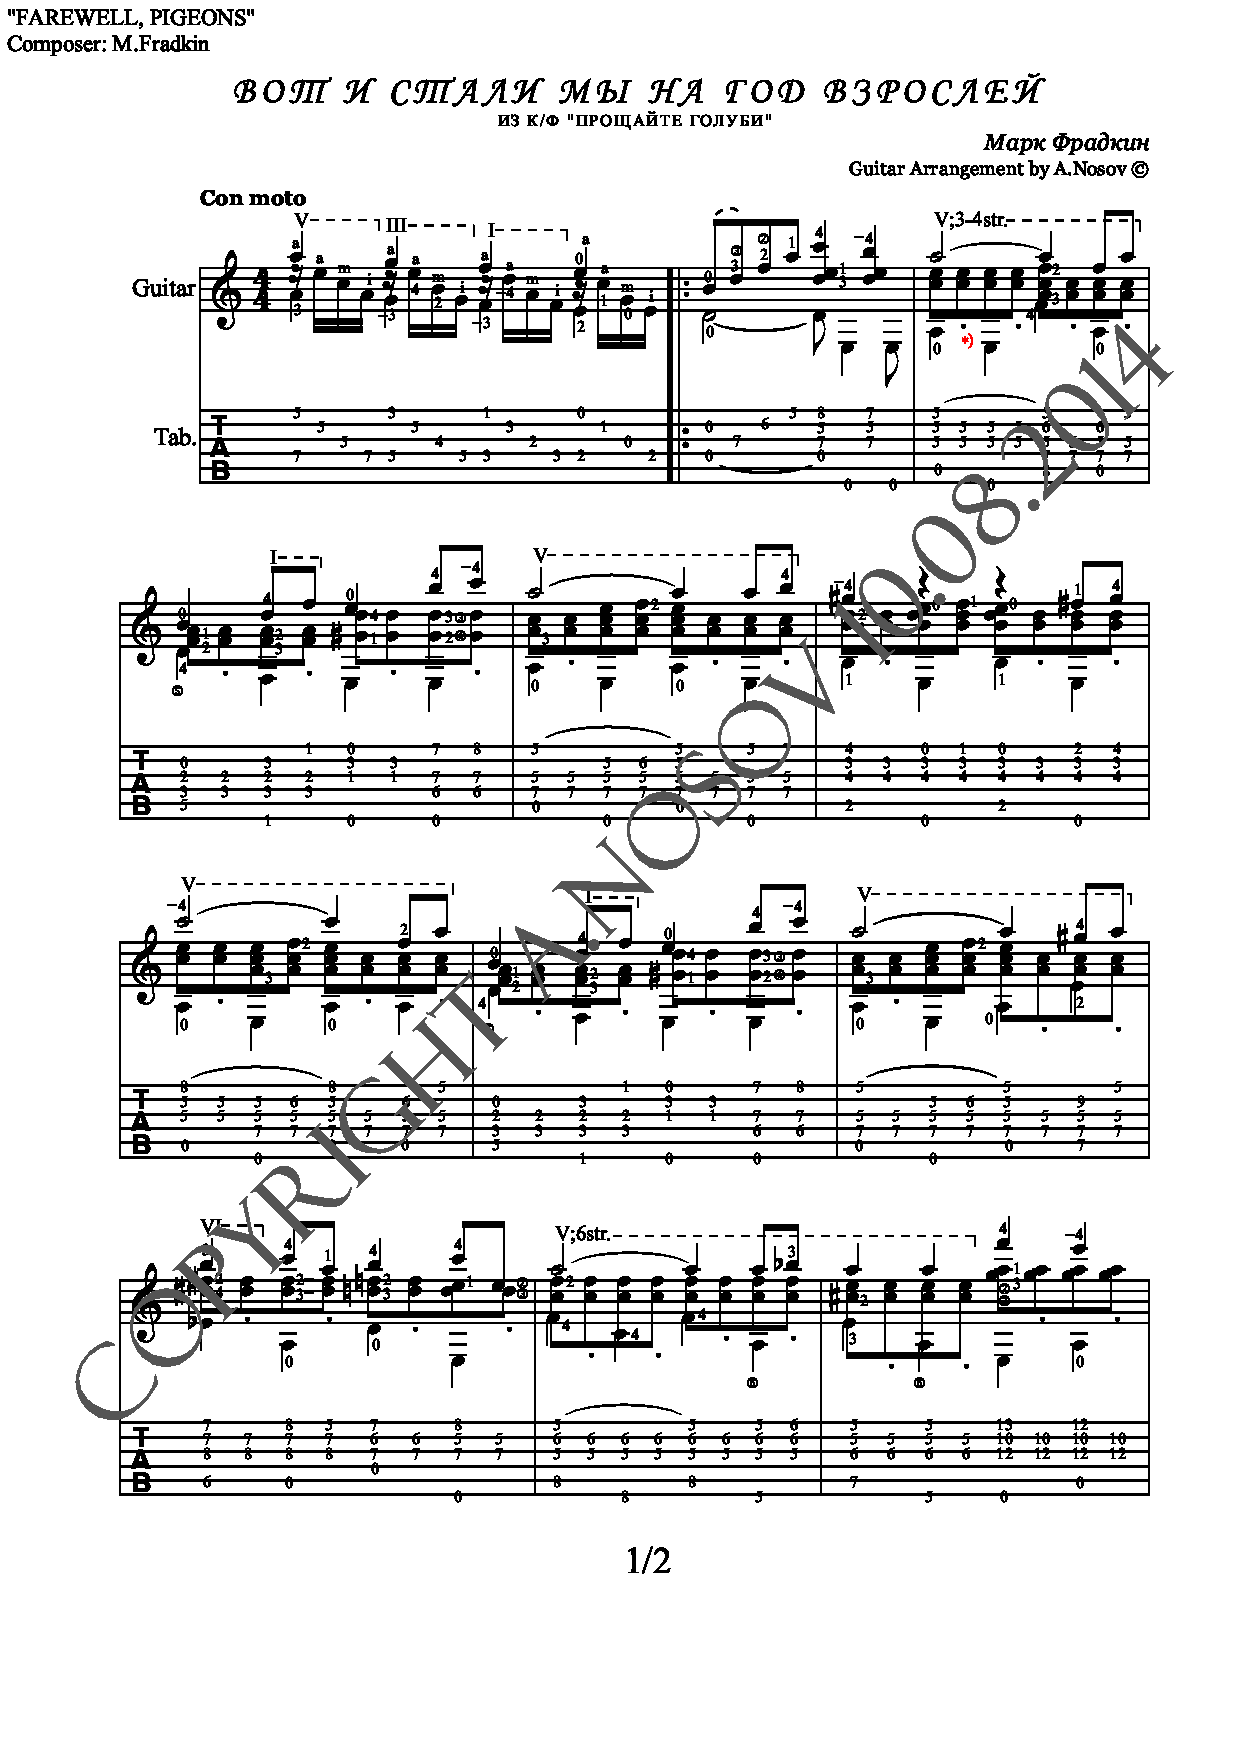 Farewell Pigeons (Sheet music and tabs for guitar solo)